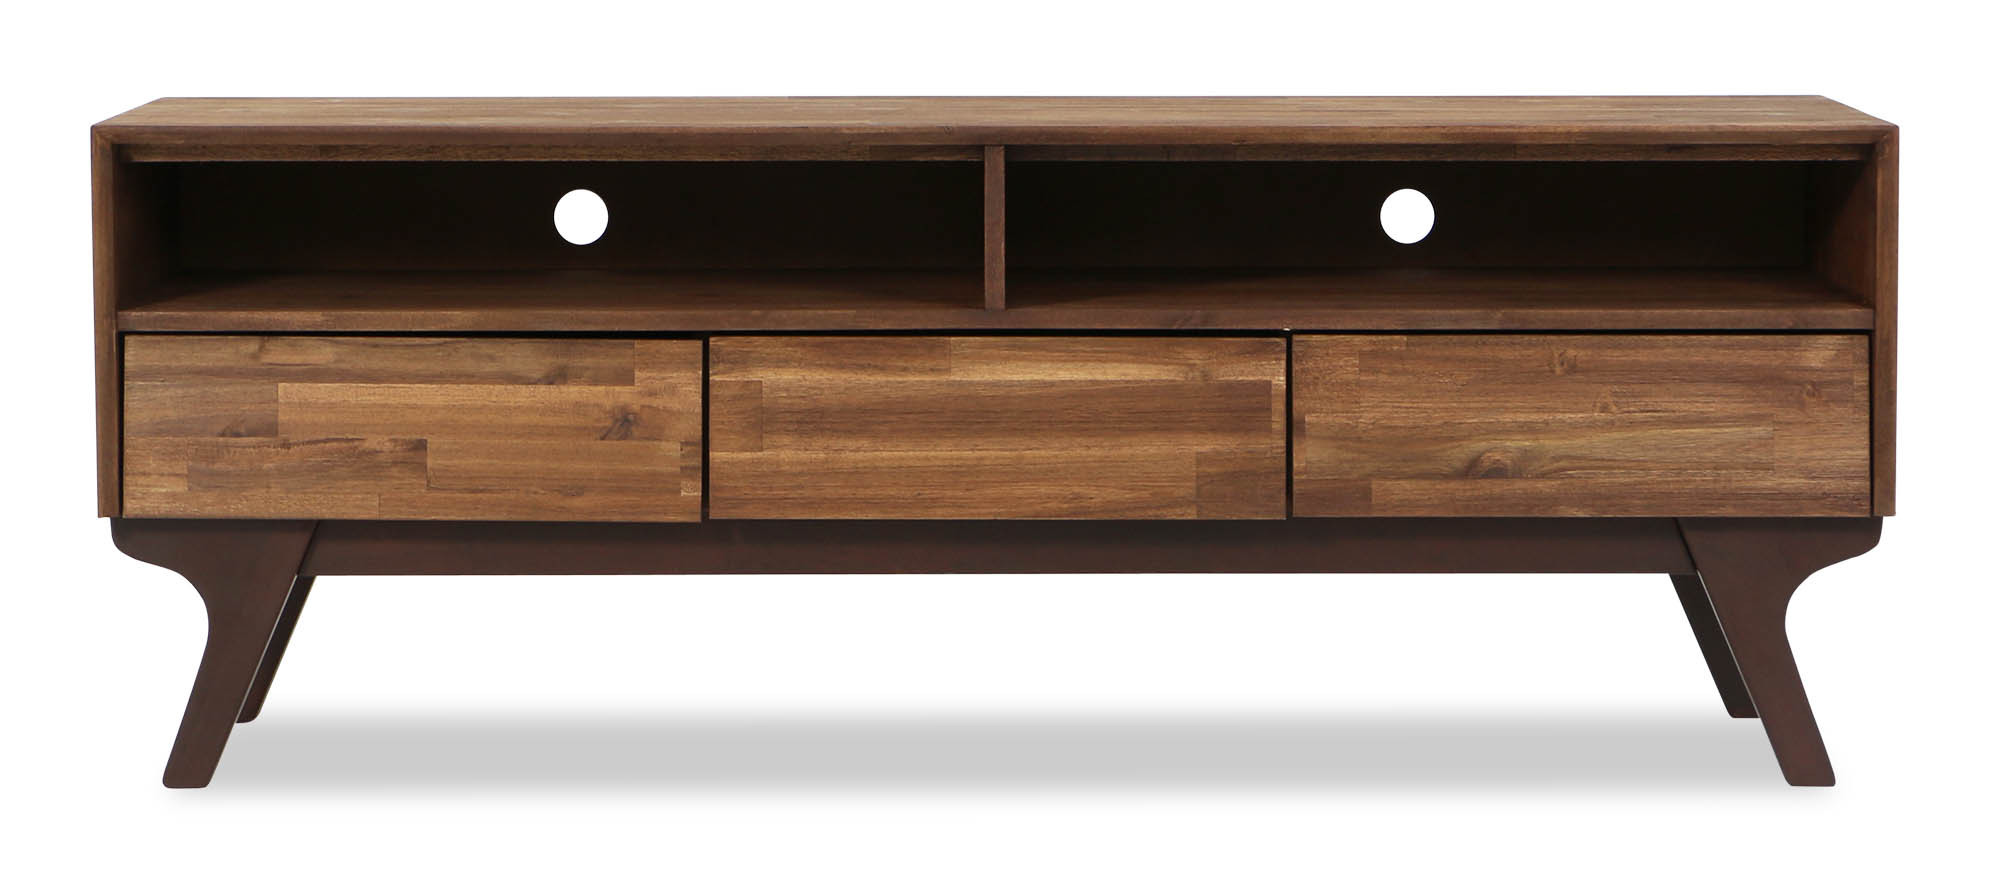 Sierra Tv Console Furniture Amp Home D 233 Cor Fortytwo